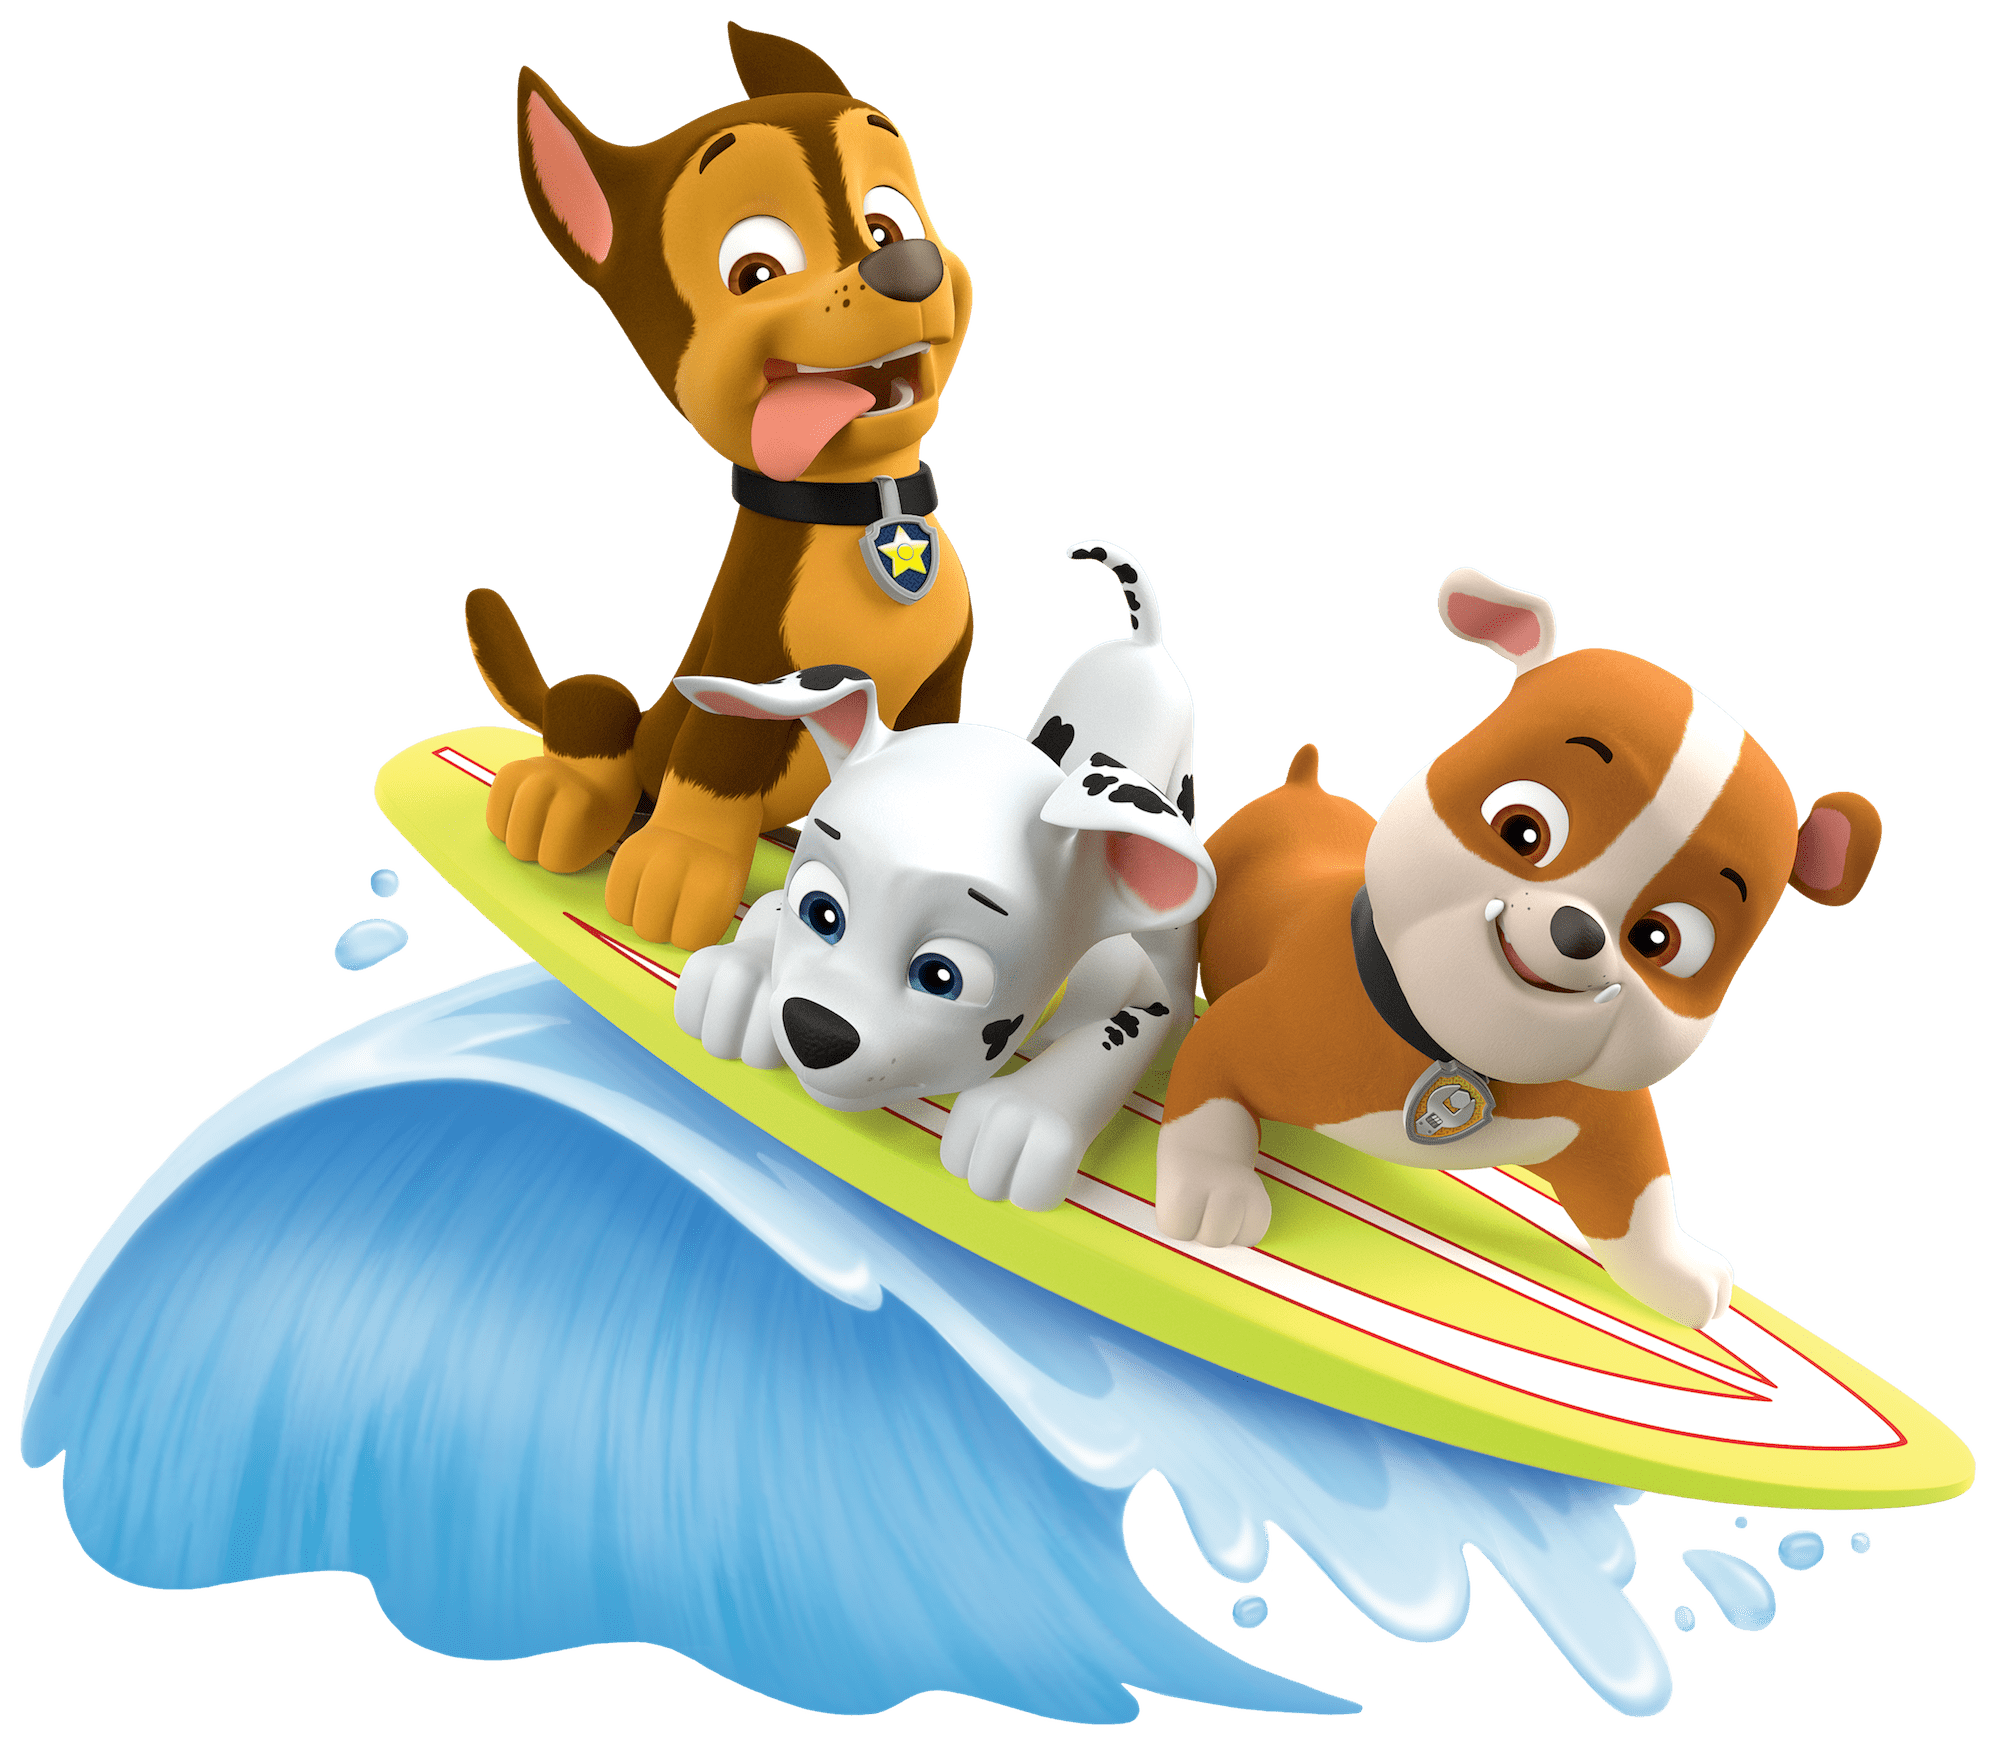 Skye paw patrol clipart at free for personal use png